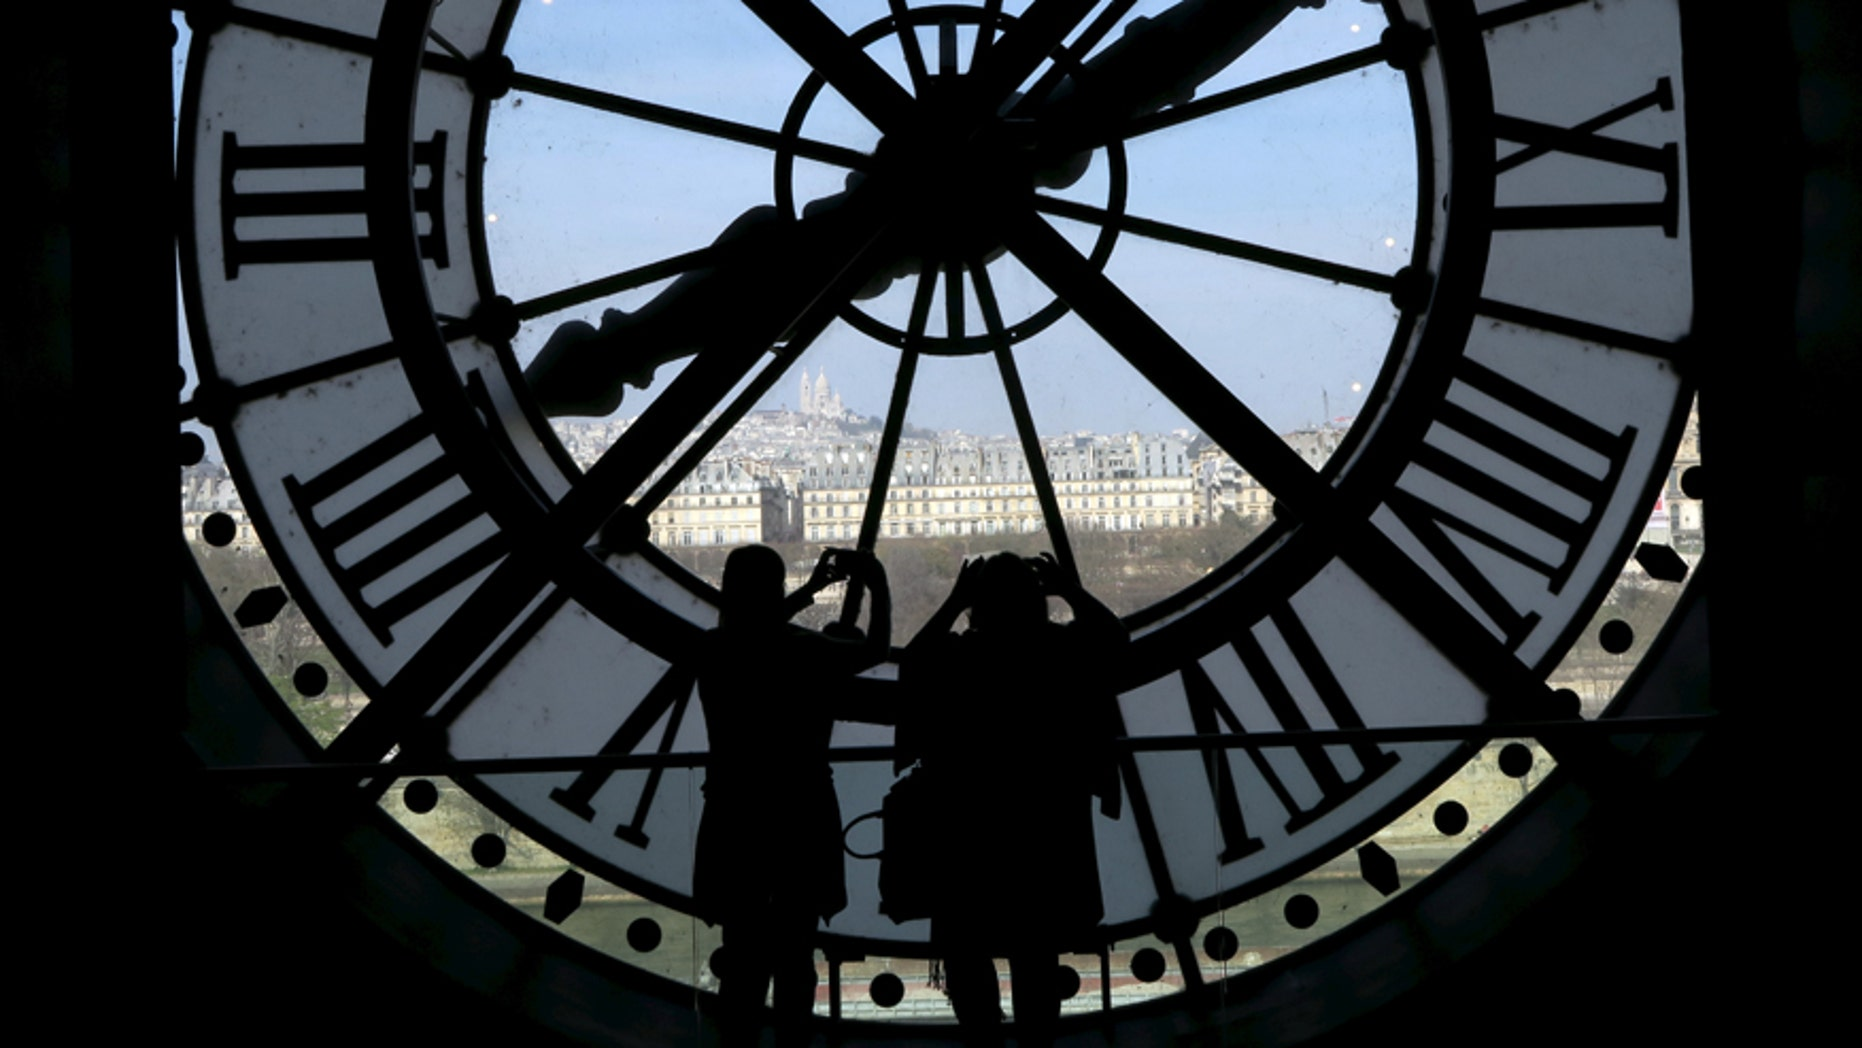 File photo - Visitors at the Musee d'Orsay are seen in silhouette as they take pictures from behind a giant clock face at the former Orsay railway station, with a view of the Sacre Coeur Basilica (rear), in Paris April 8, 2015. (REUTERS/John Schults)